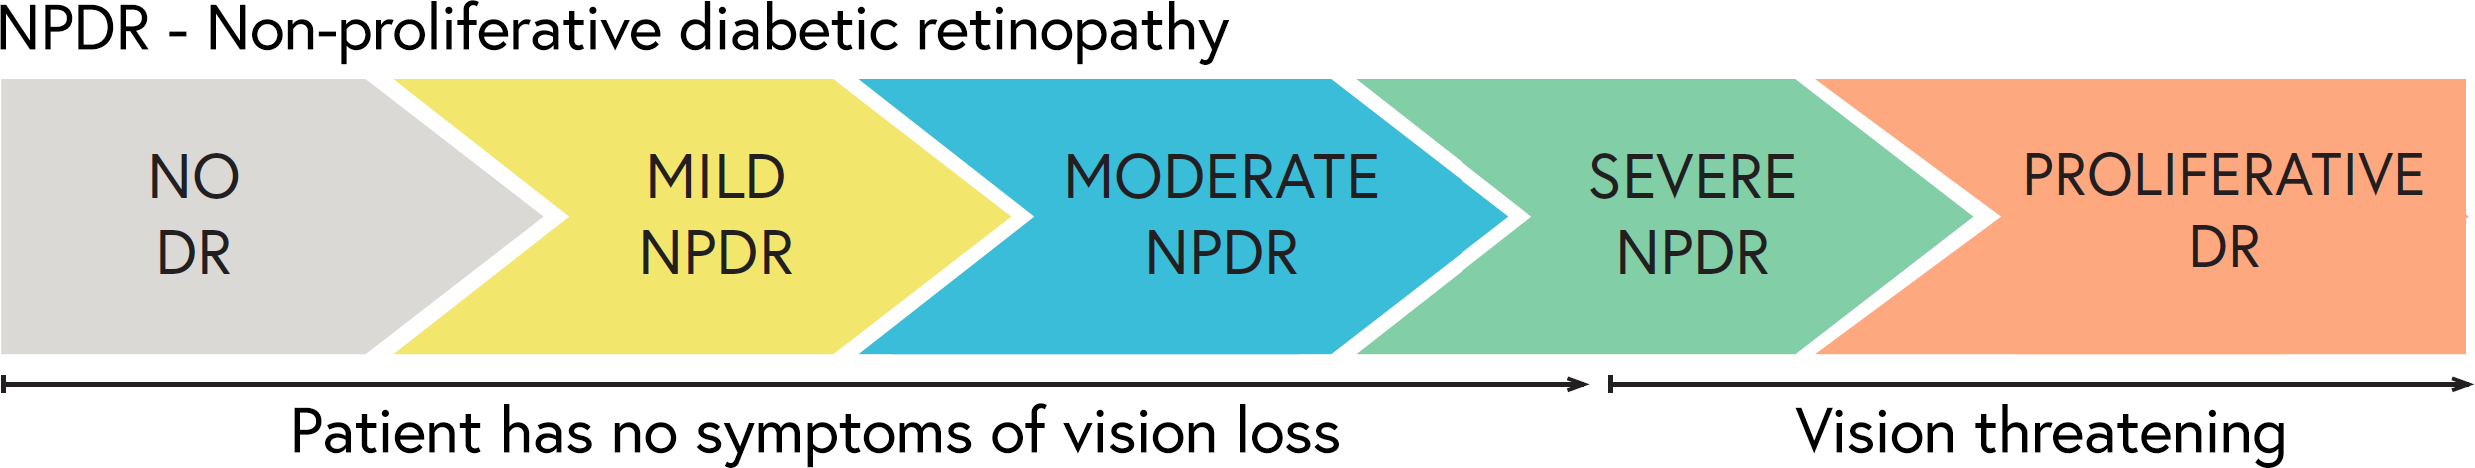 DR progresses through mild and moderate stages before becoming vision threatening in its severe and proliferative stages